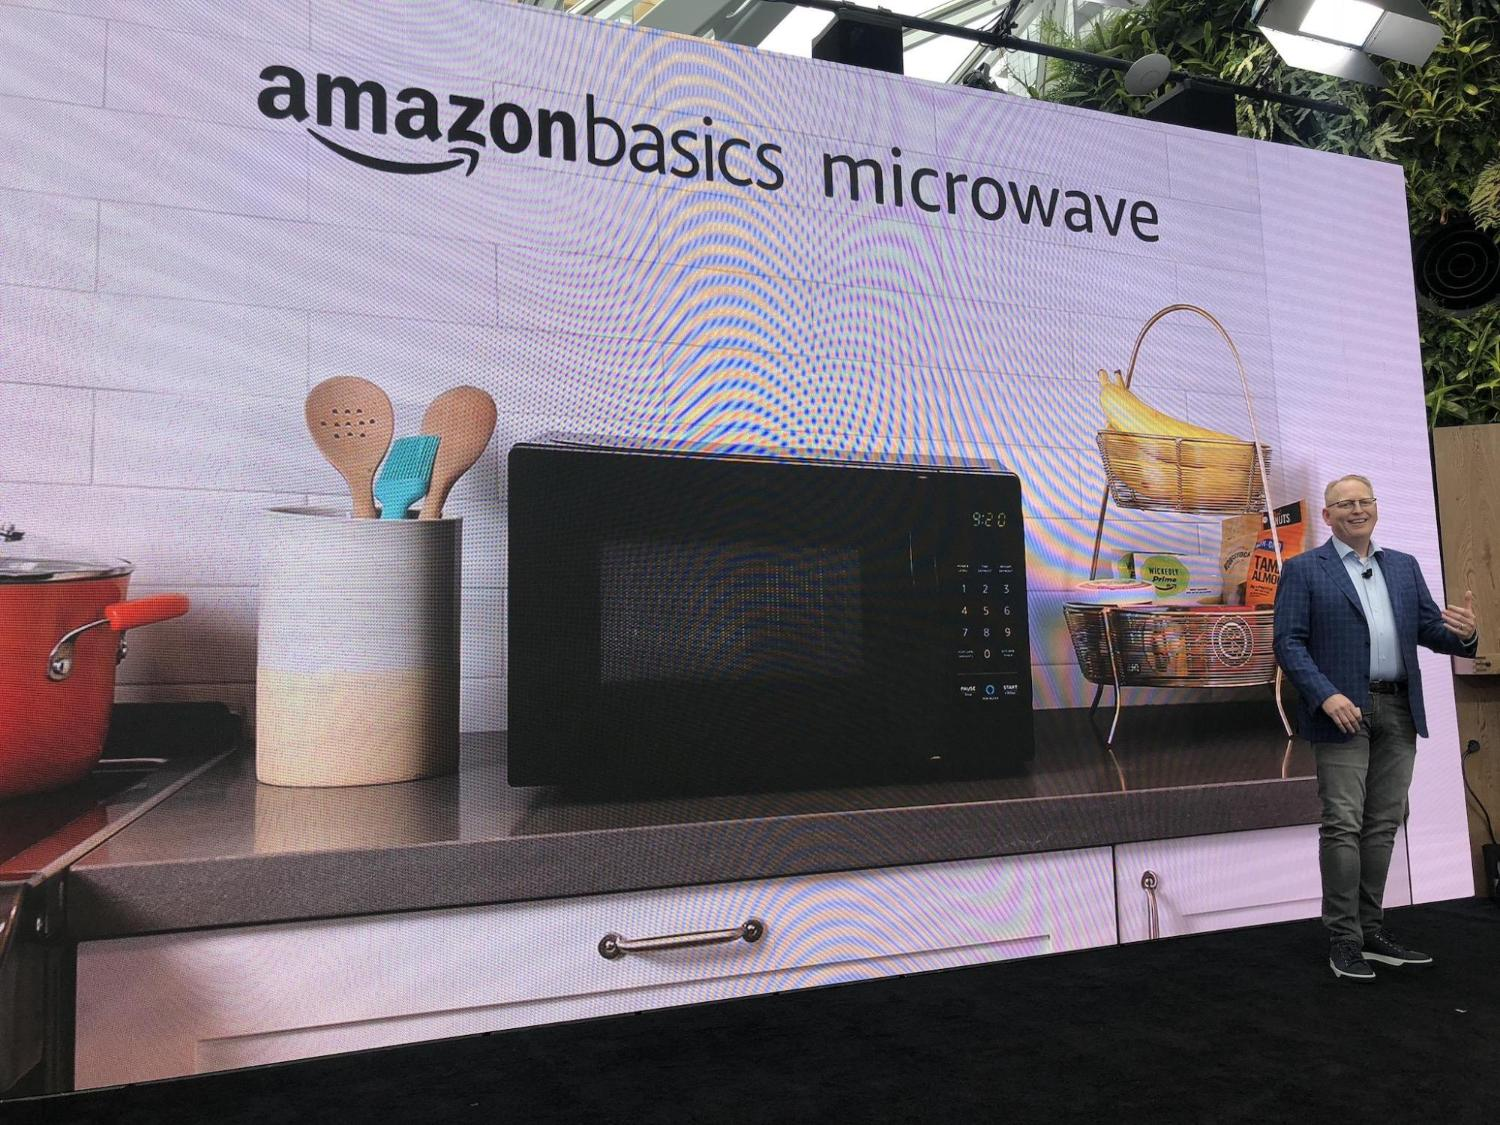 Amazon just released a microwave that connects to the internet https://t.co/hnNB20PFbJ https://t.co/tv7AFSFqvz